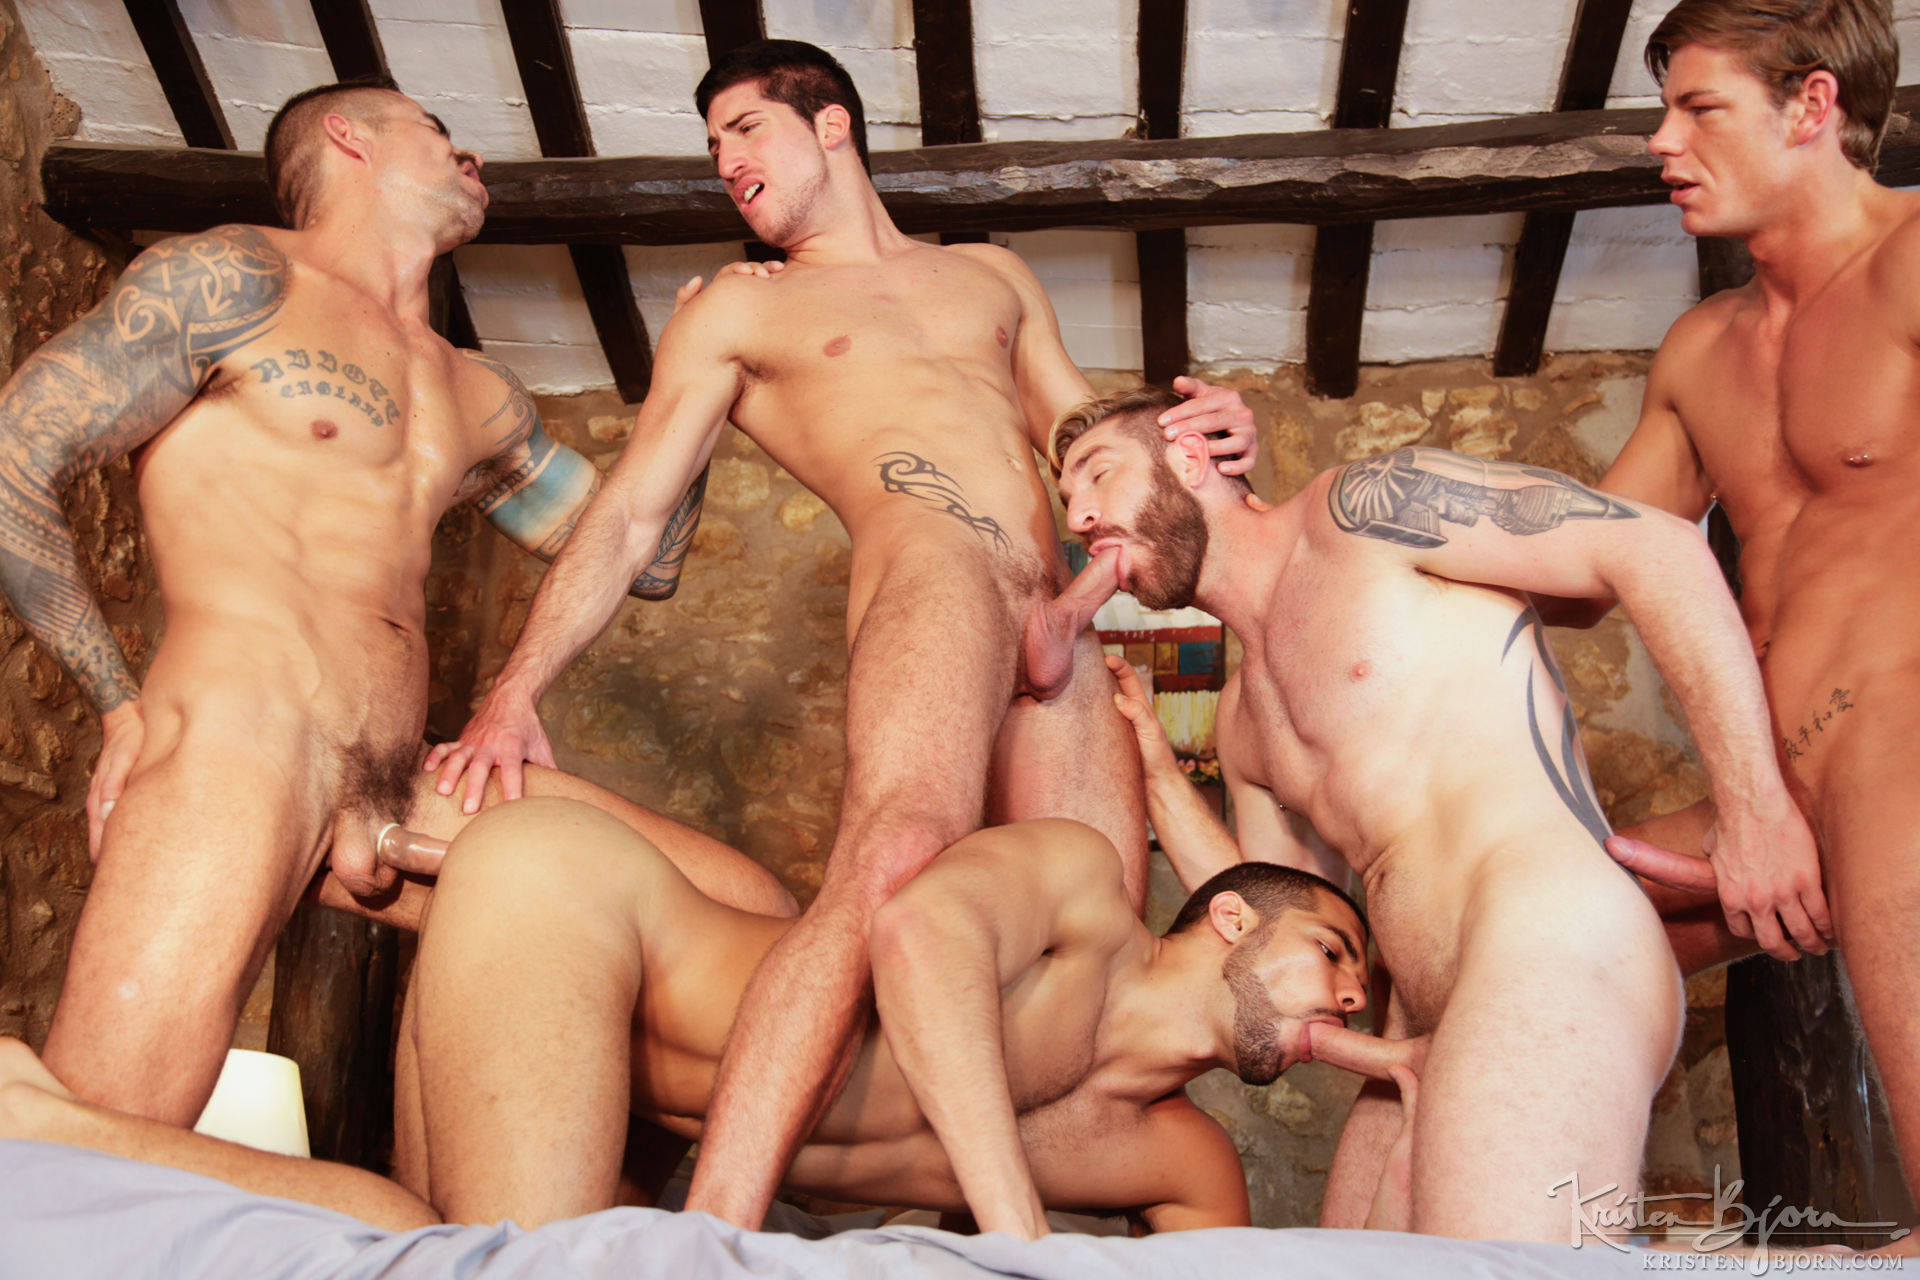 Big dicked european homosexuals are ready for hardcore sex